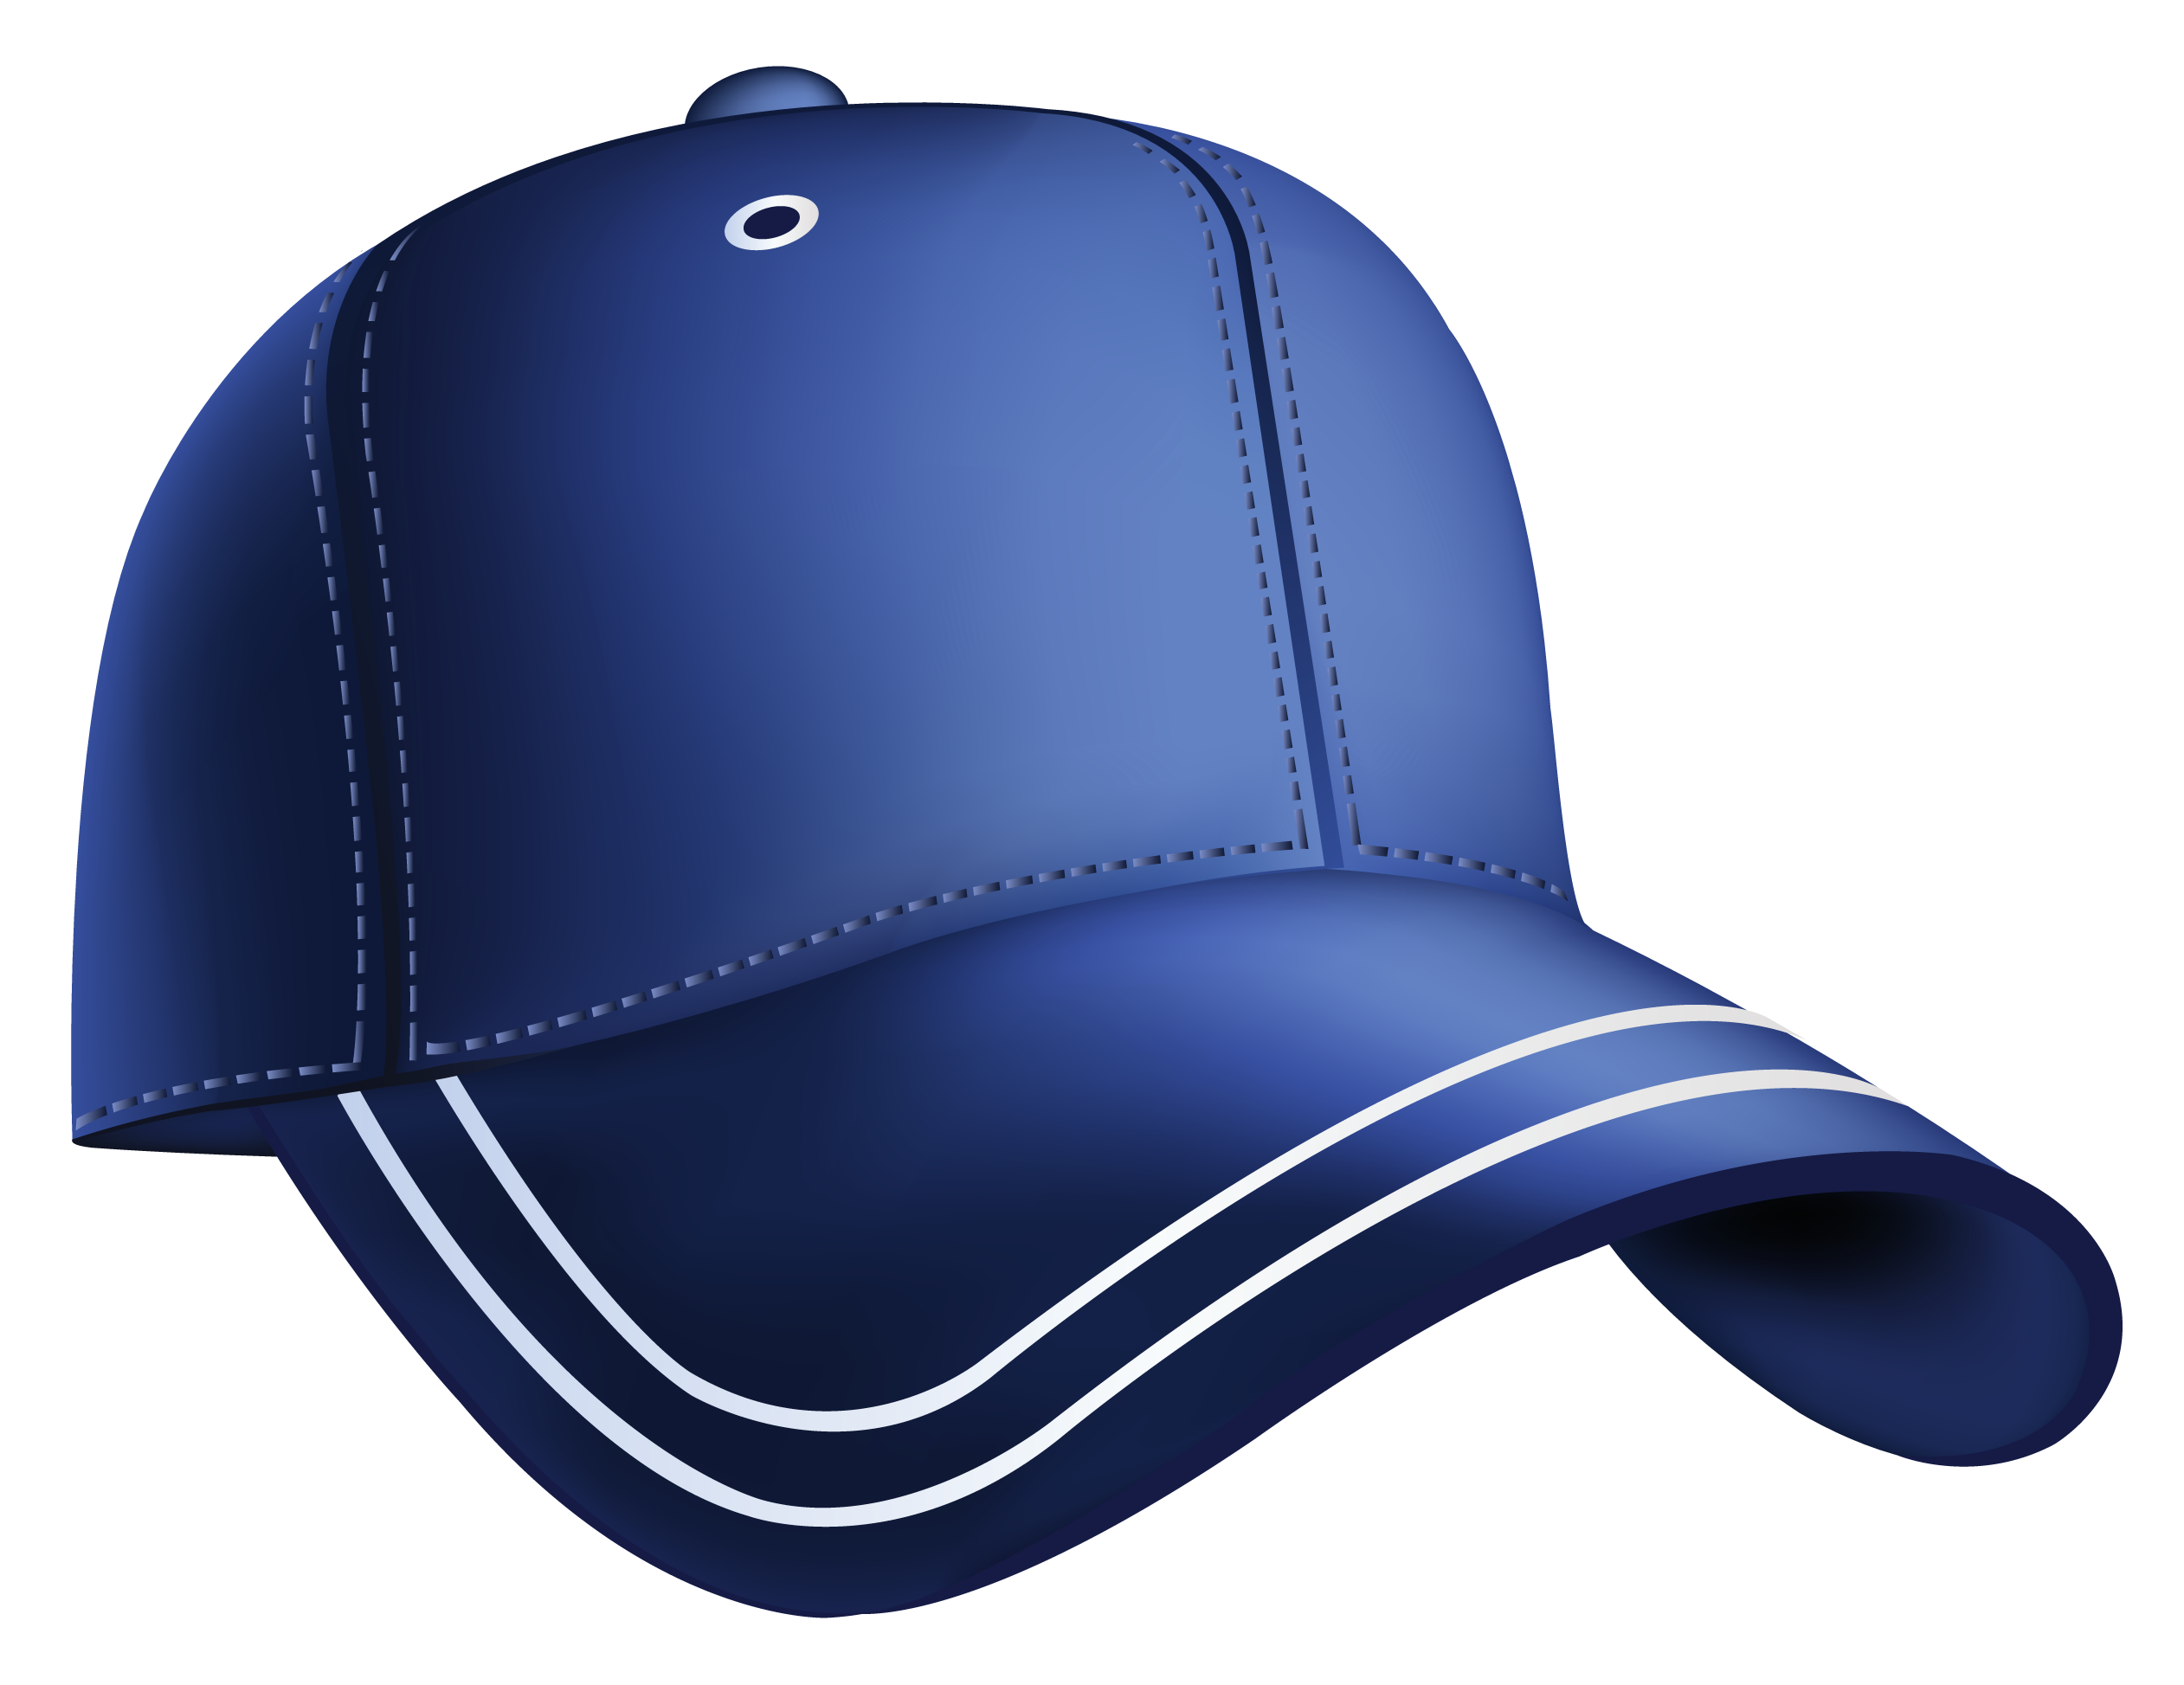 Blue baseball hat clipart jpg black and white stock Blue Baseball Cap Clipart jpg black and white stock